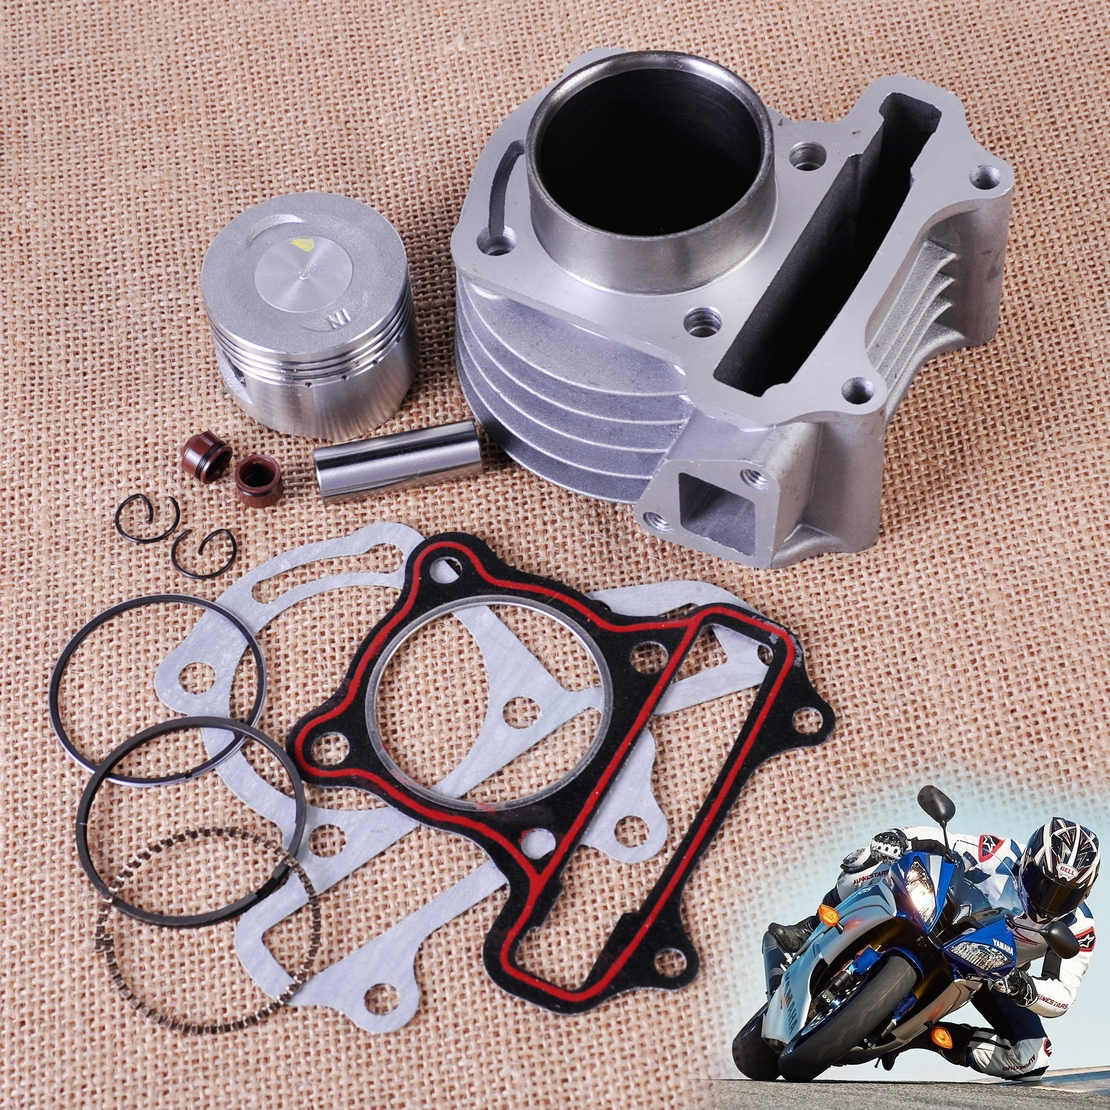 DWCX 47mm Big Bore Kit Cylinder Piston Rings Fit For GY6 50cc To 80cc 4 Stroke Scooter Moped ATV With 139QMB 139QMA Engine